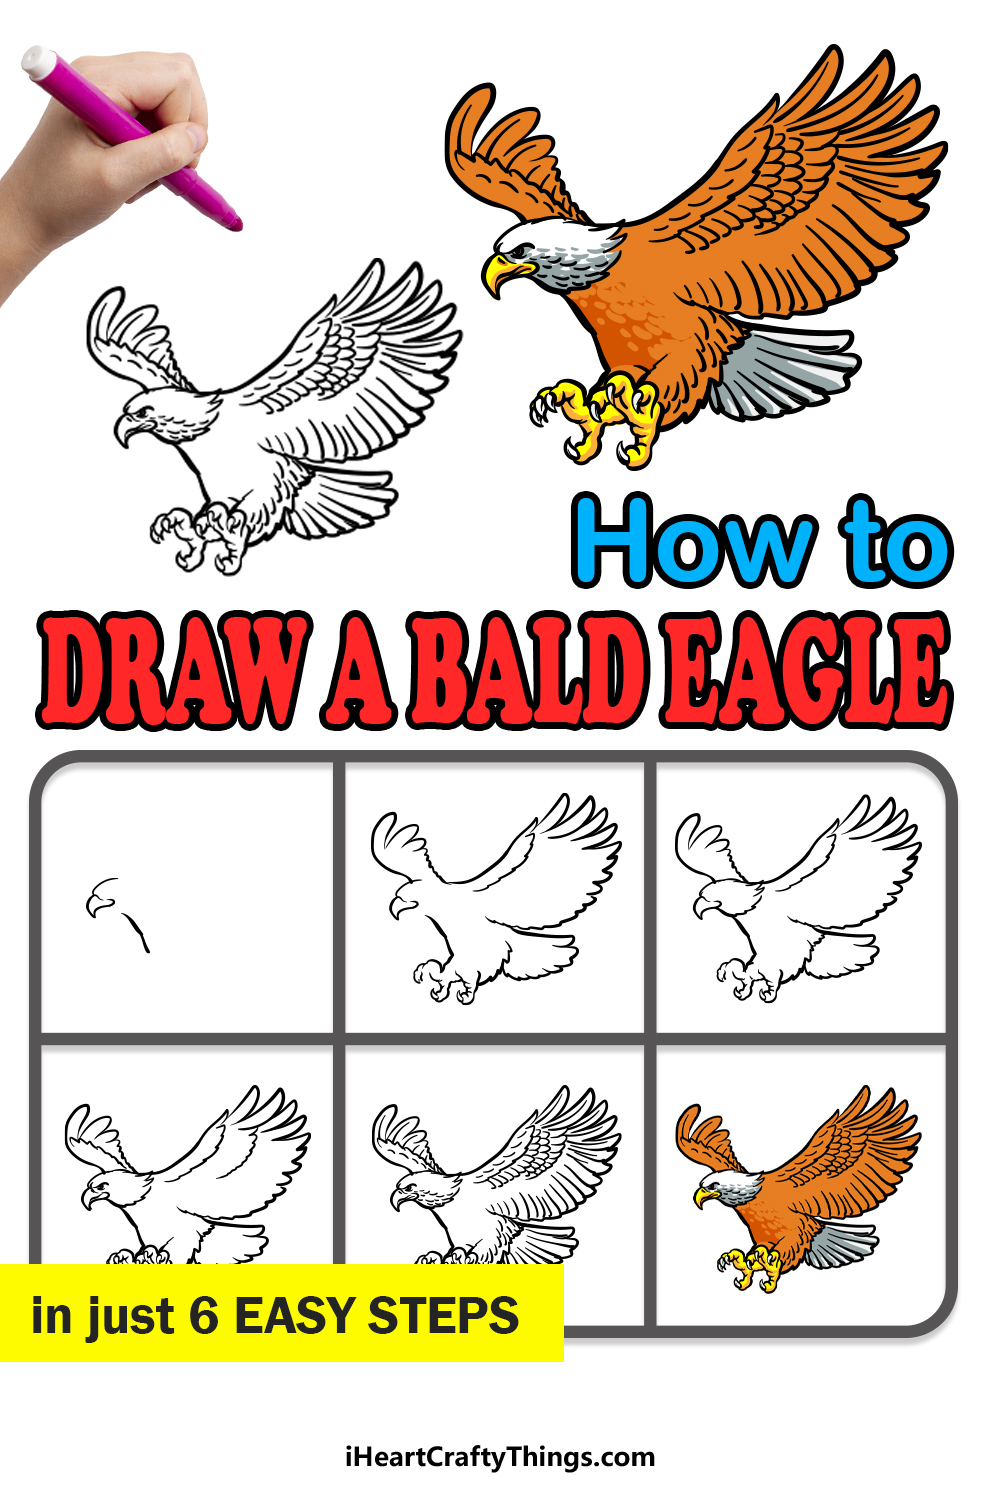 how to draw a bald eagle in 6 easy steps